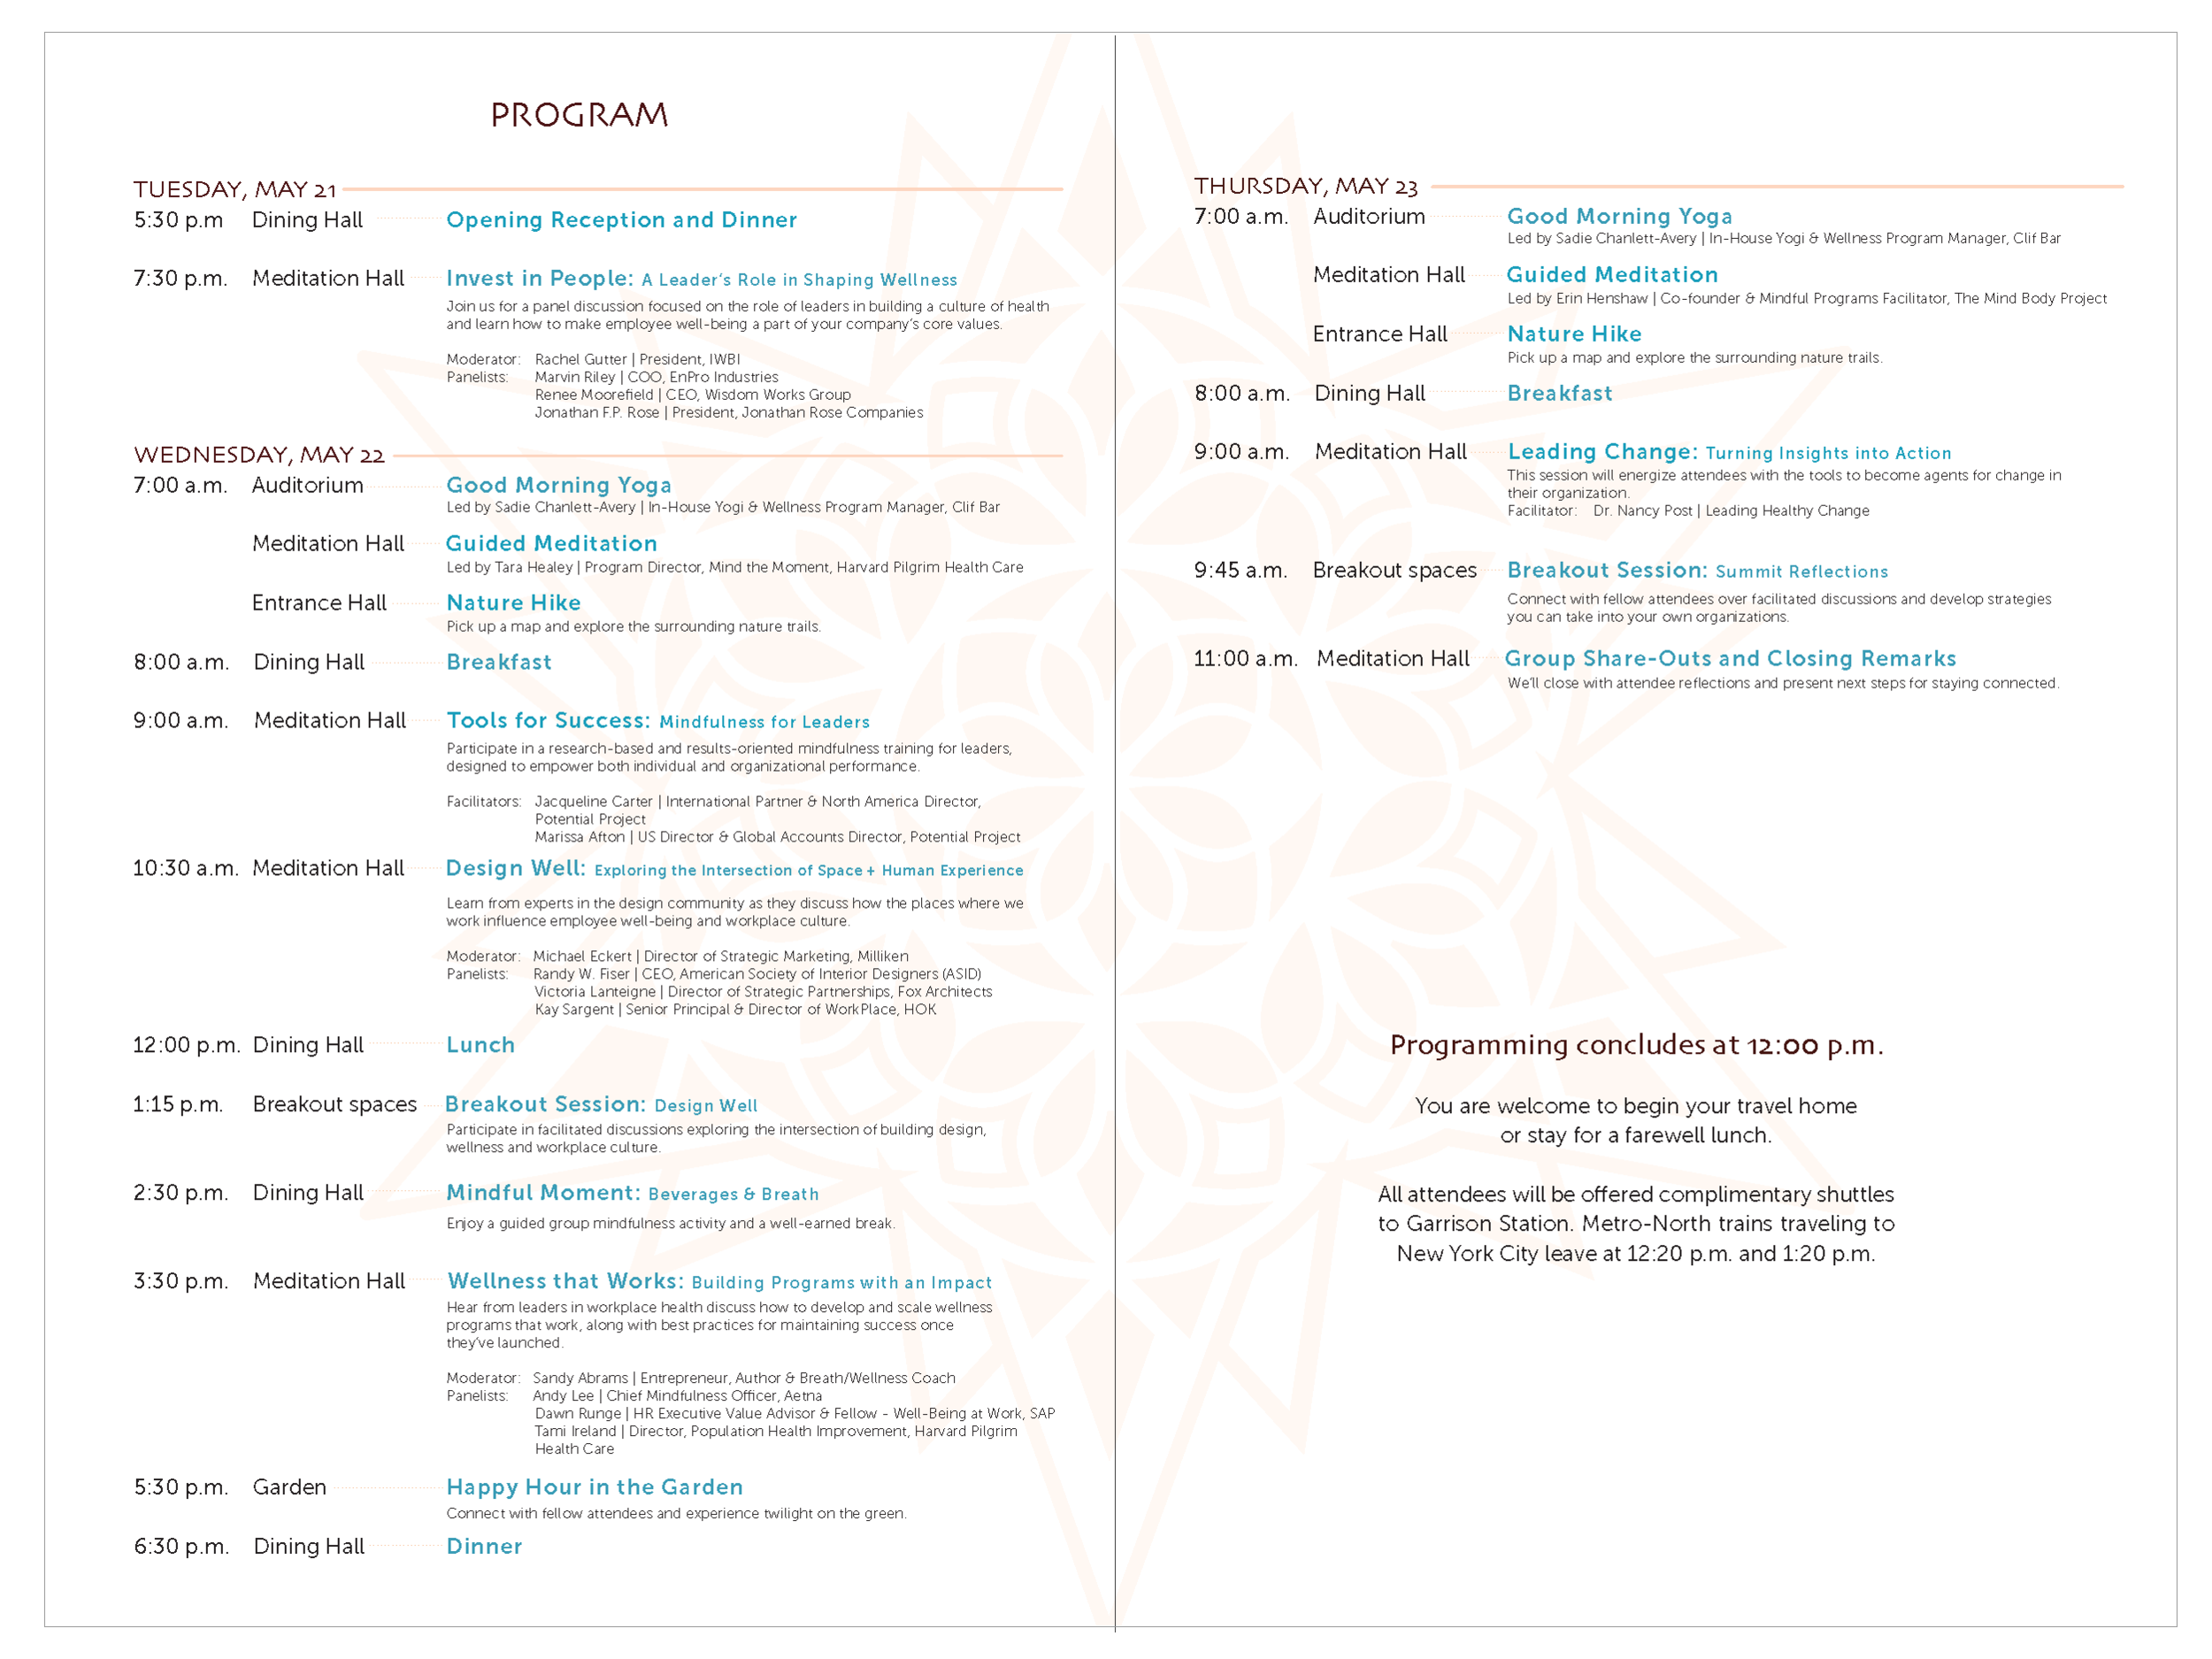 WELL-WellnessSummit-Booklet-Spreads_Page_3.png